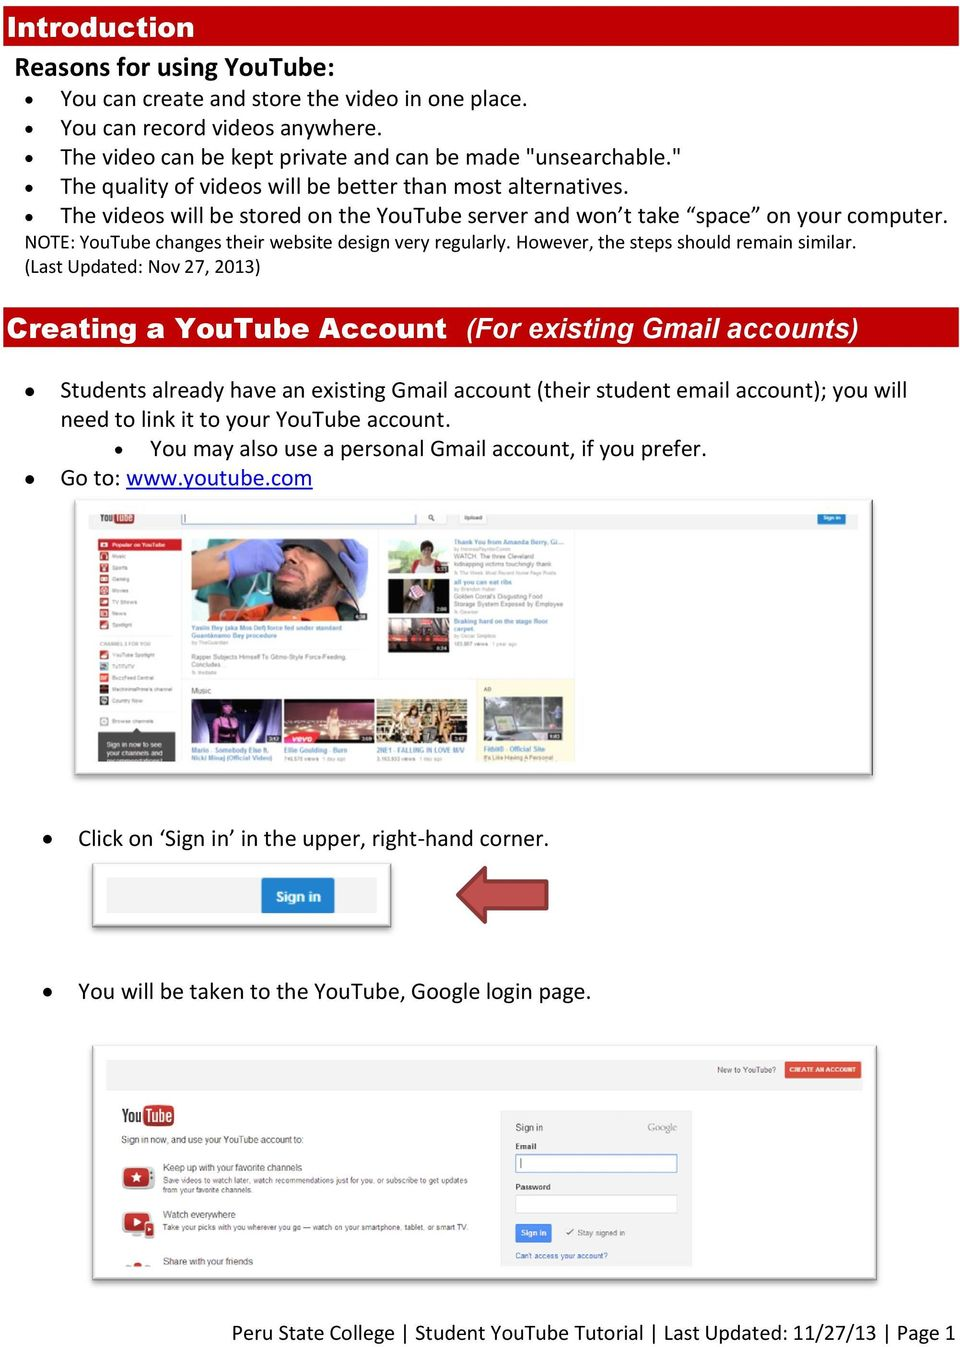 NOTE: YouTube changes their website design very regularly. However, the steps should remain similar.